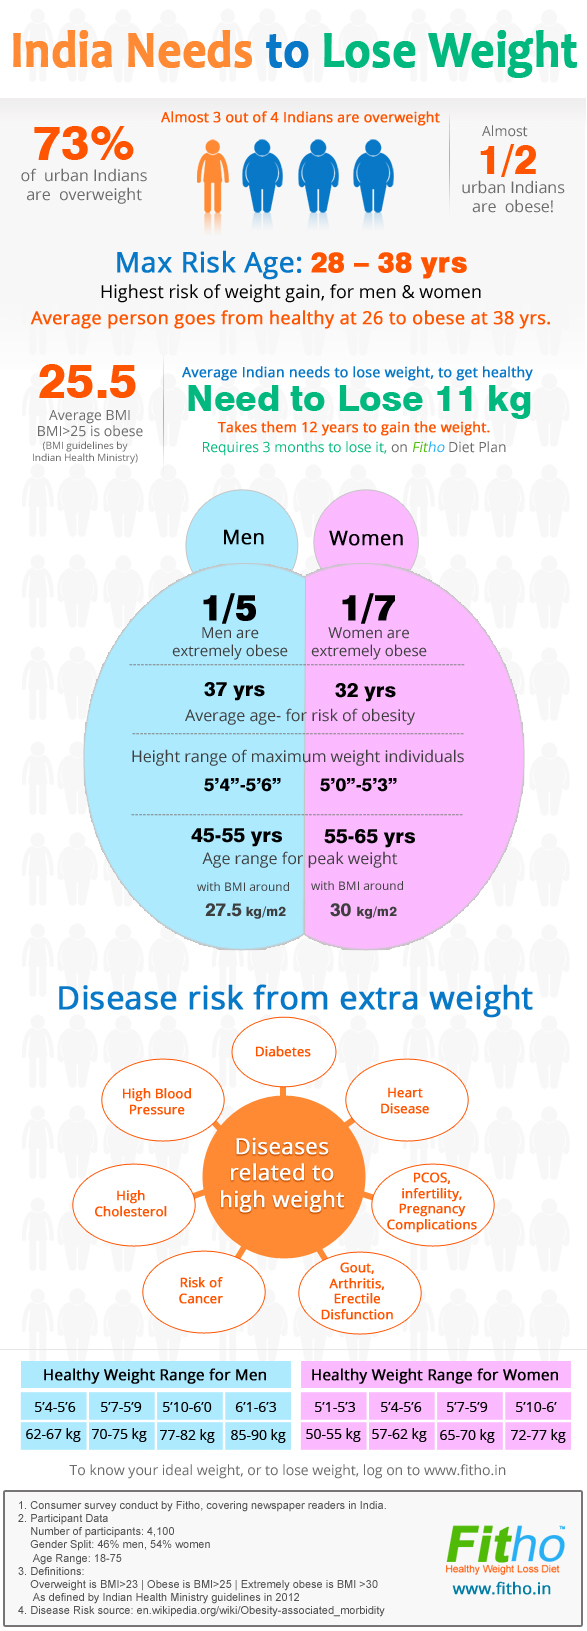 obesity crisis Obesity fact sheet from who providing key facts and information on causes, health consequences, double burden of disease, prevention, who response.